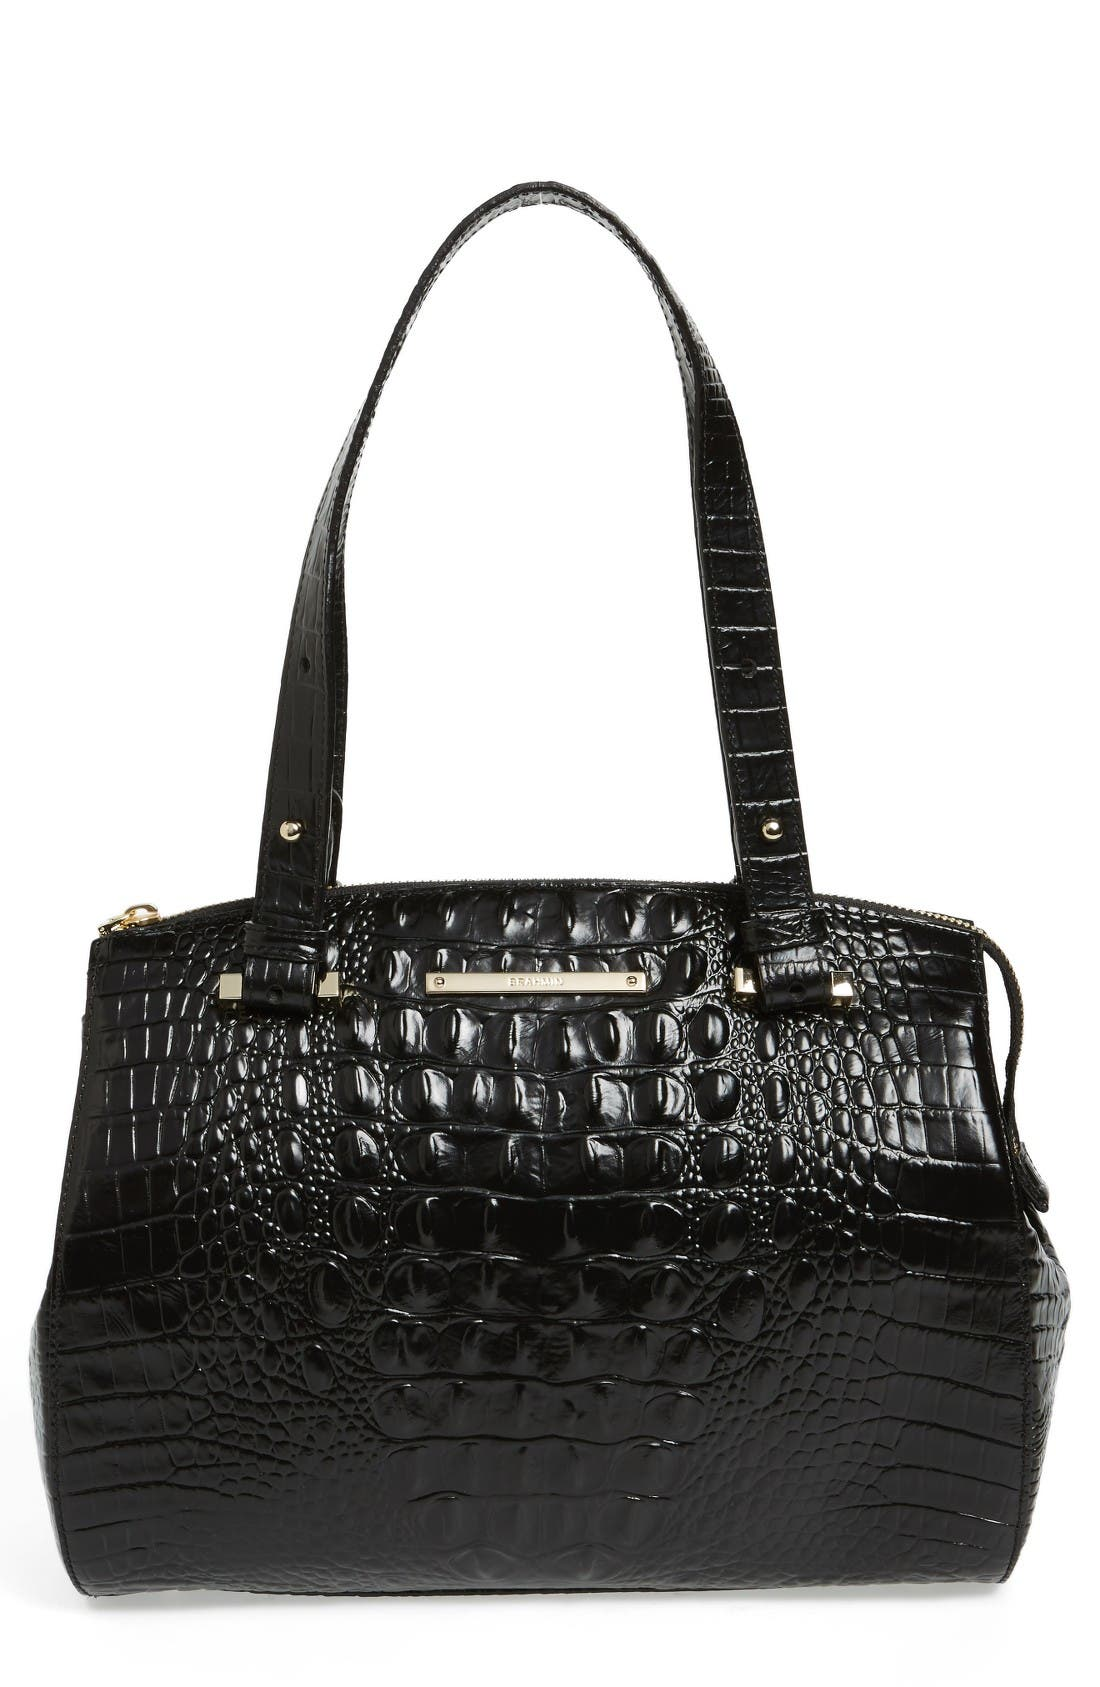 Main Image - Brahmin Small Alice Melbourne Leather Satchel